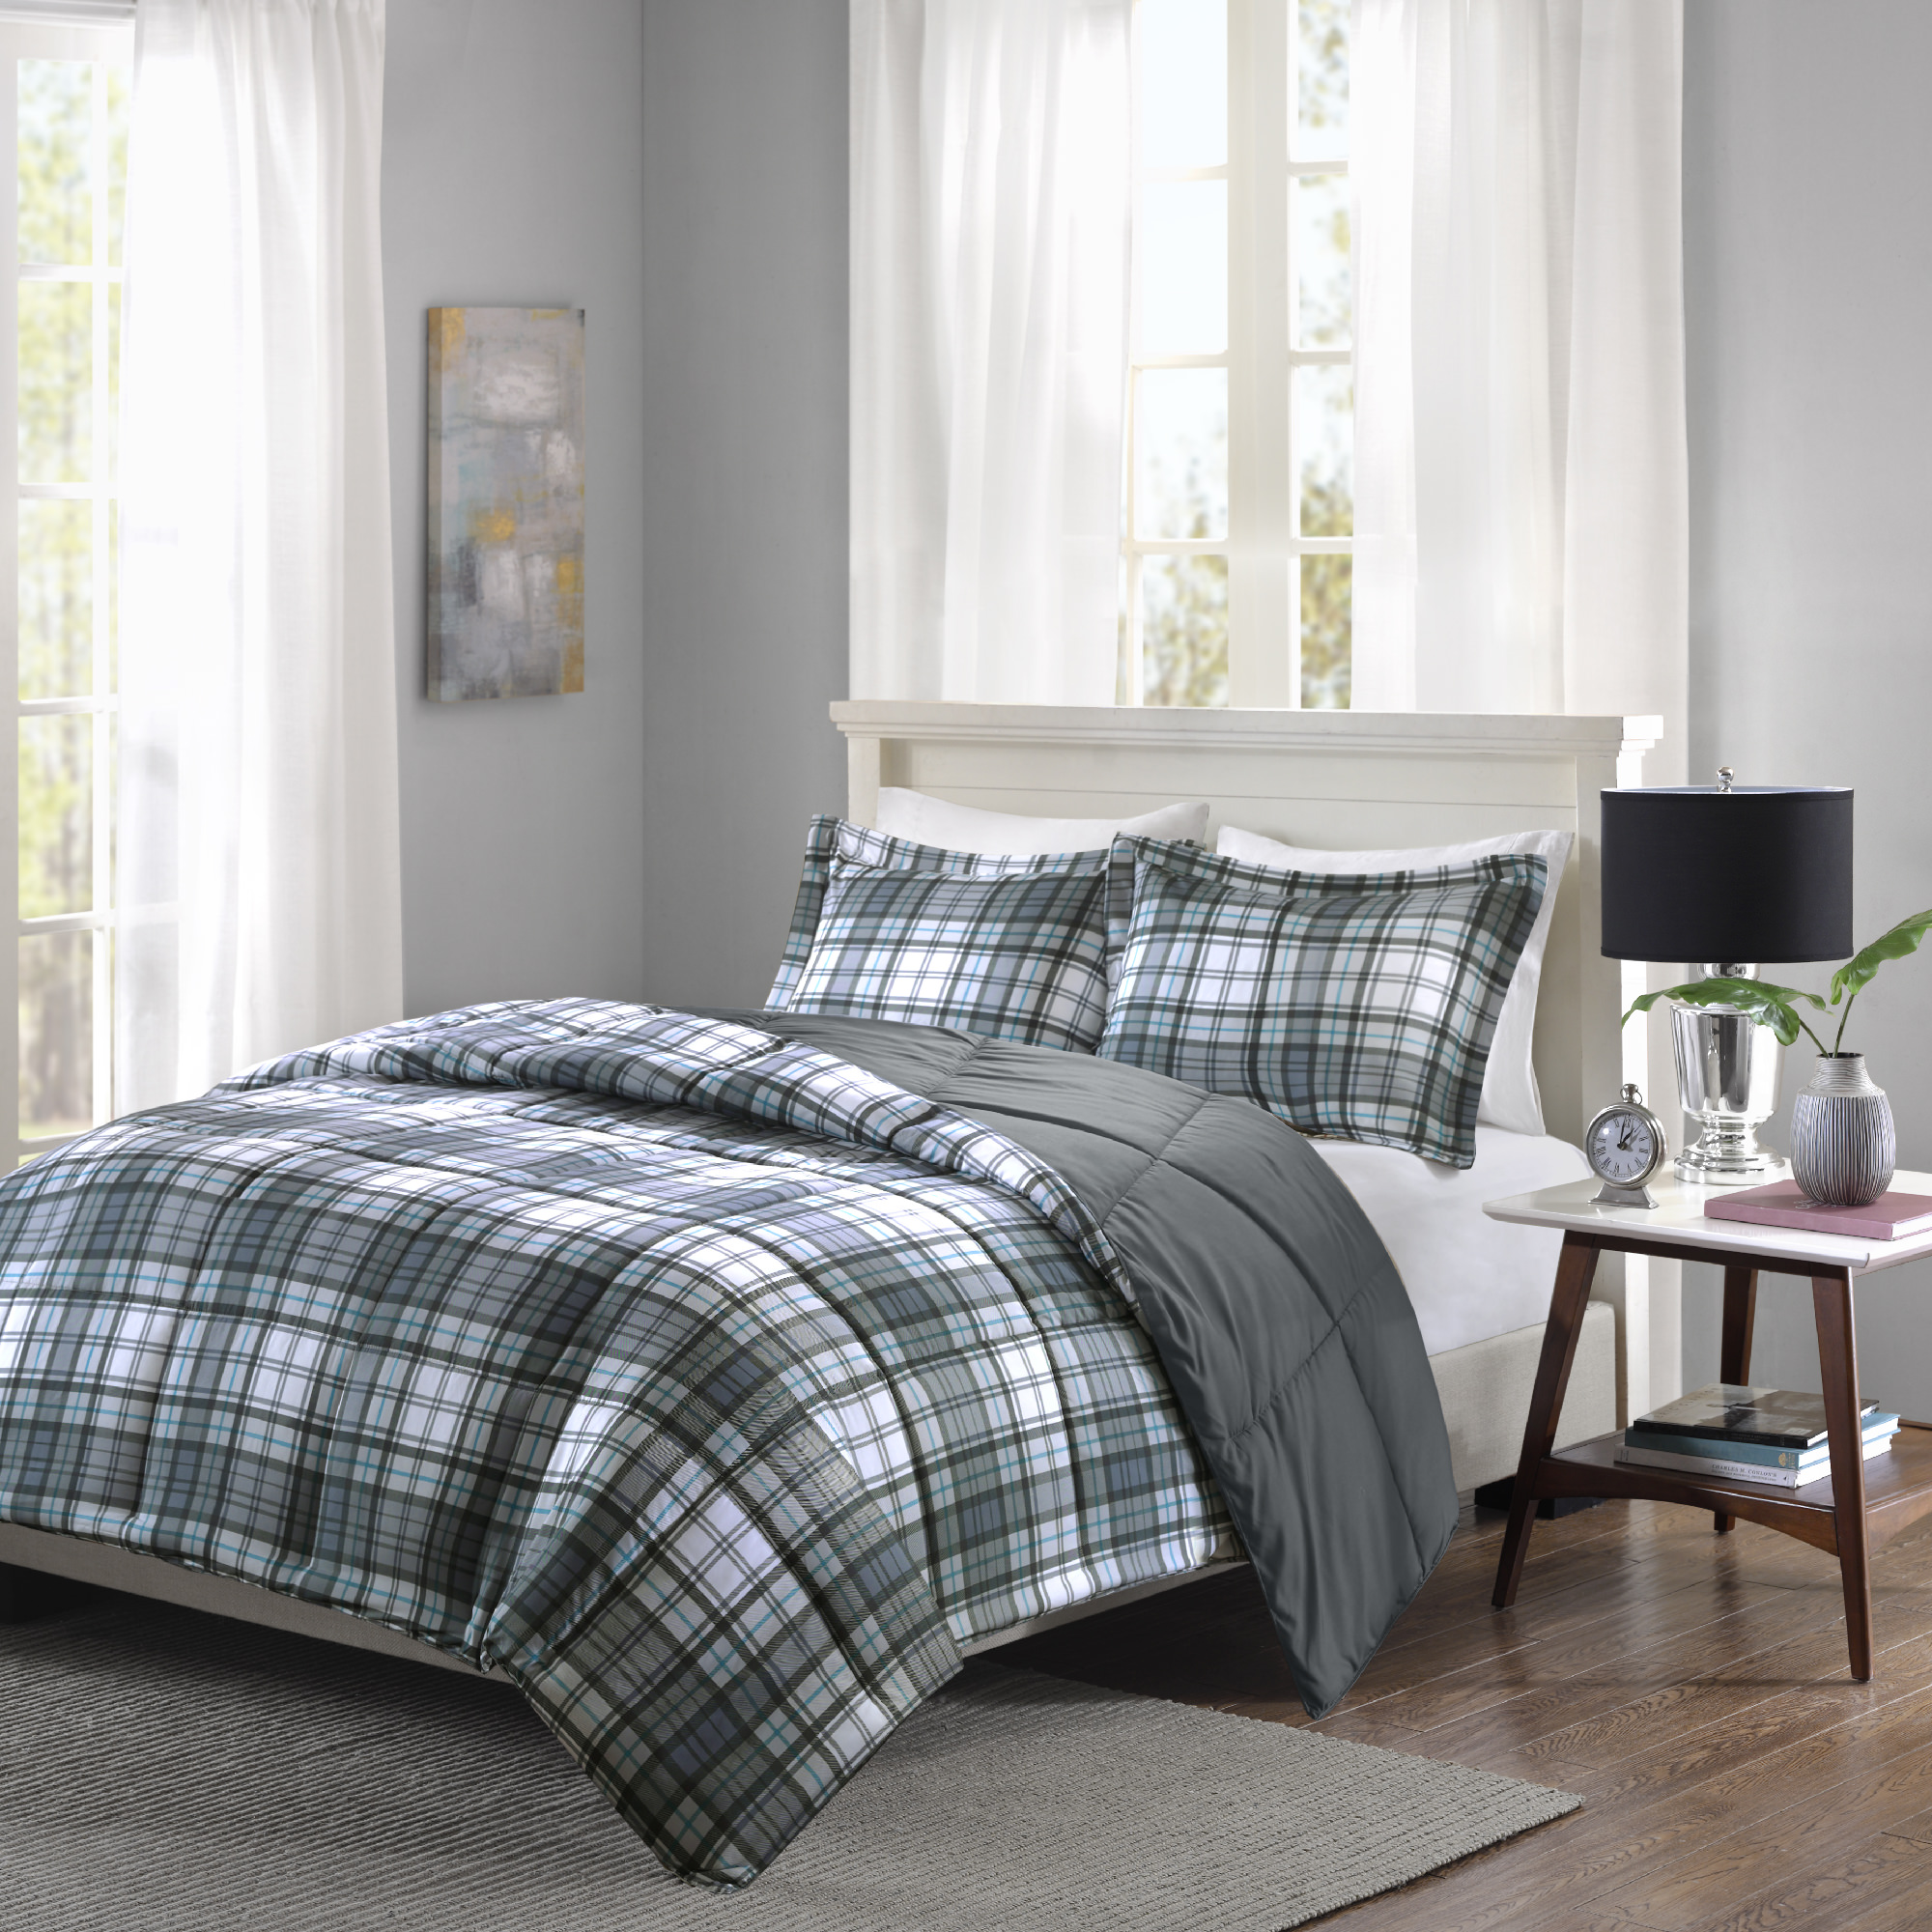 Comfort Classics Hartford 3M Down Alternative Comforter Mini Set